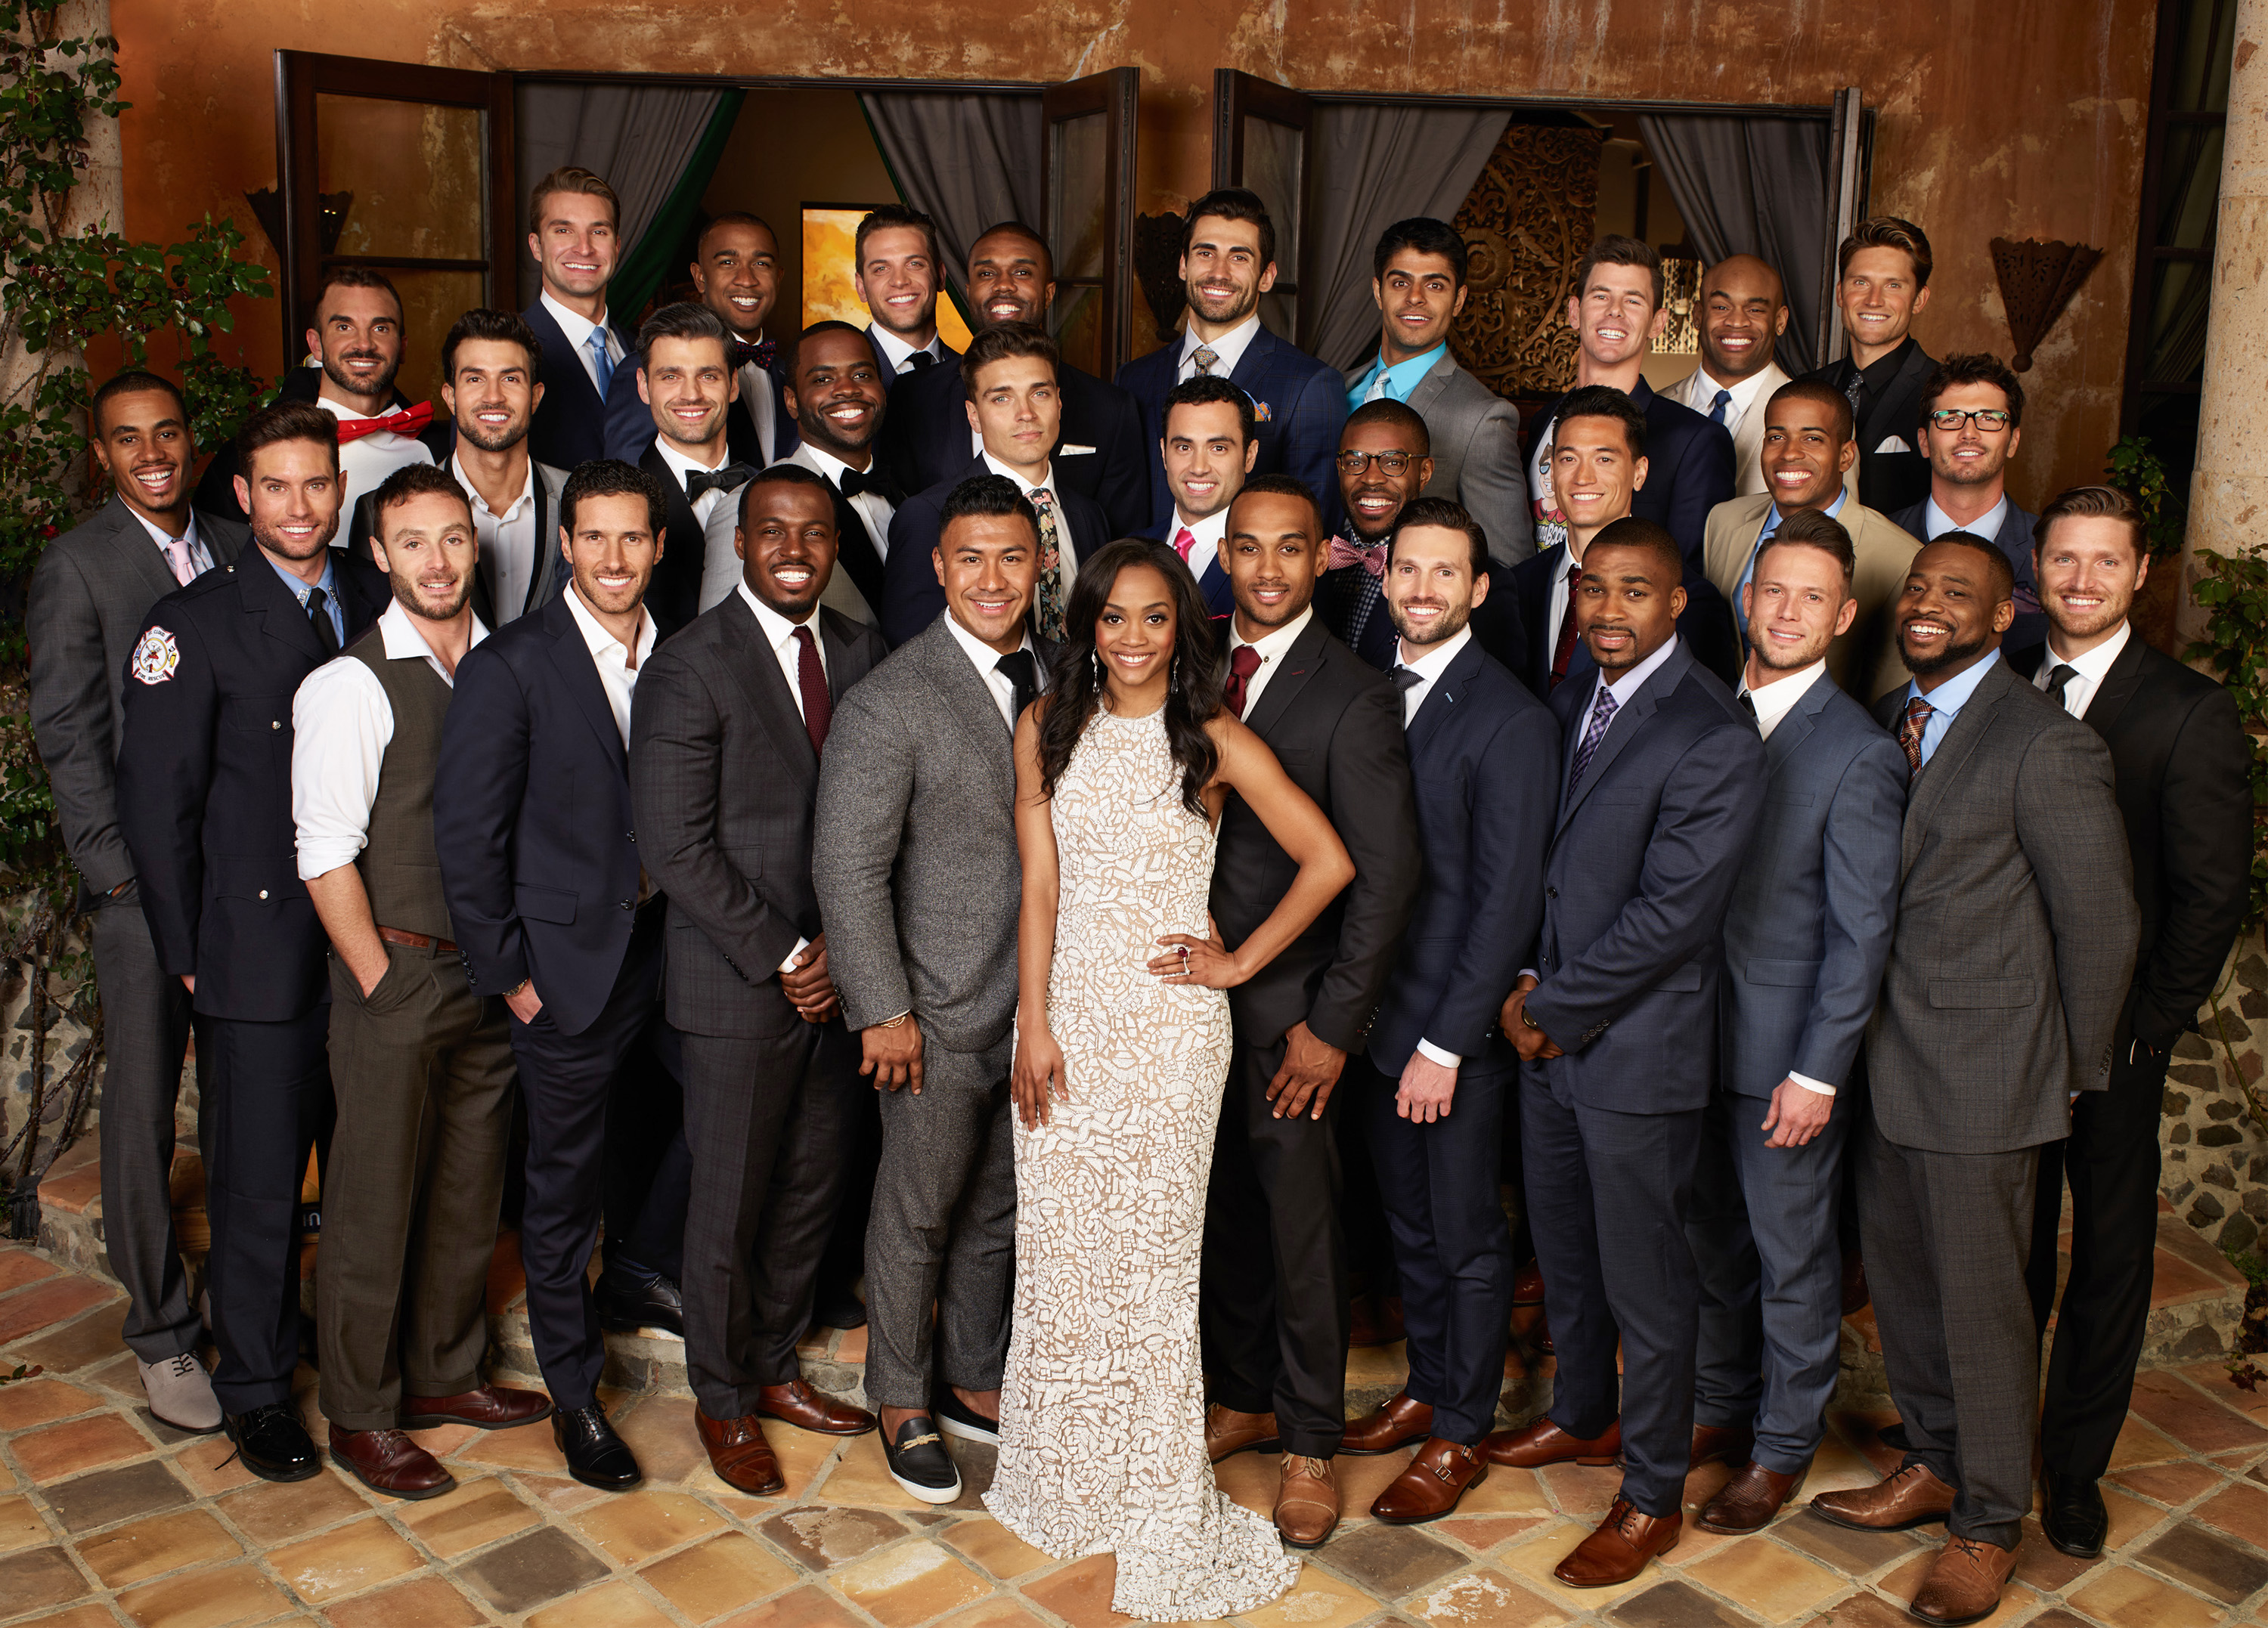 The Wait Is Officially Over To See Bachelorette 2017 Cast And Lucky Men Vying For Sophisticated Lawyers Heart